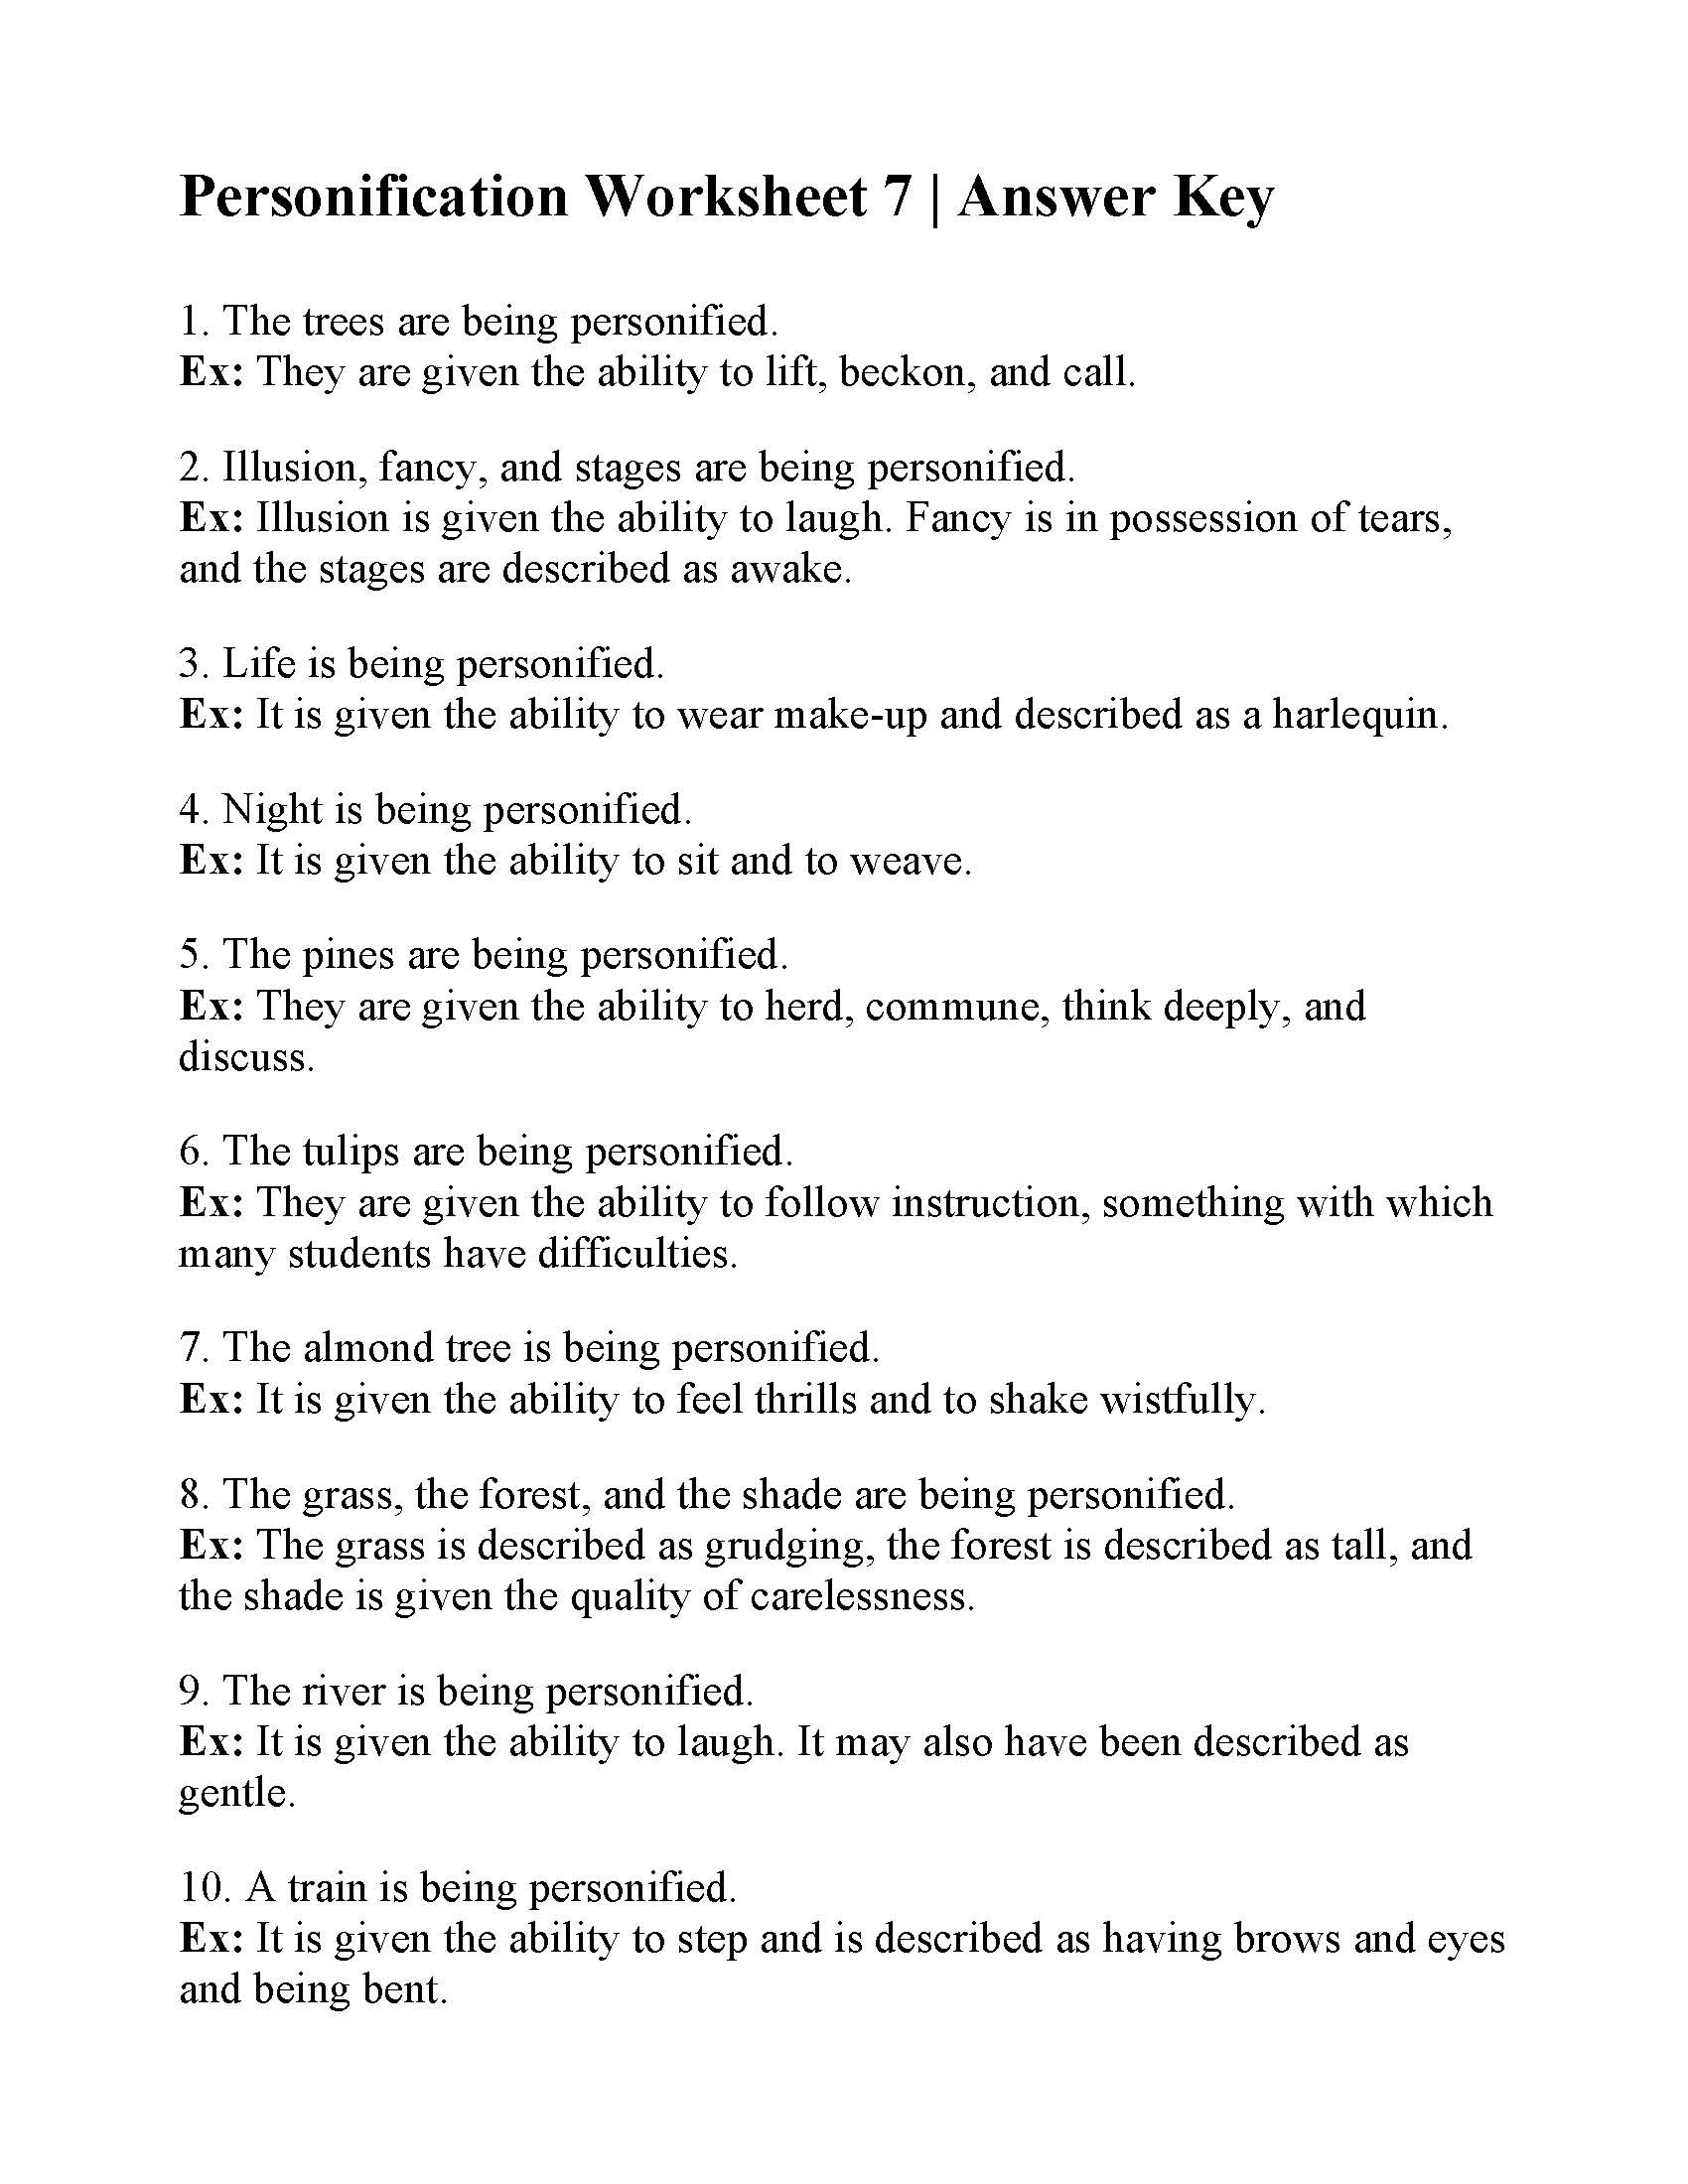 Personification Worksheets 6th Grade Personification Worksheet Answers Worksheets Chapter Test